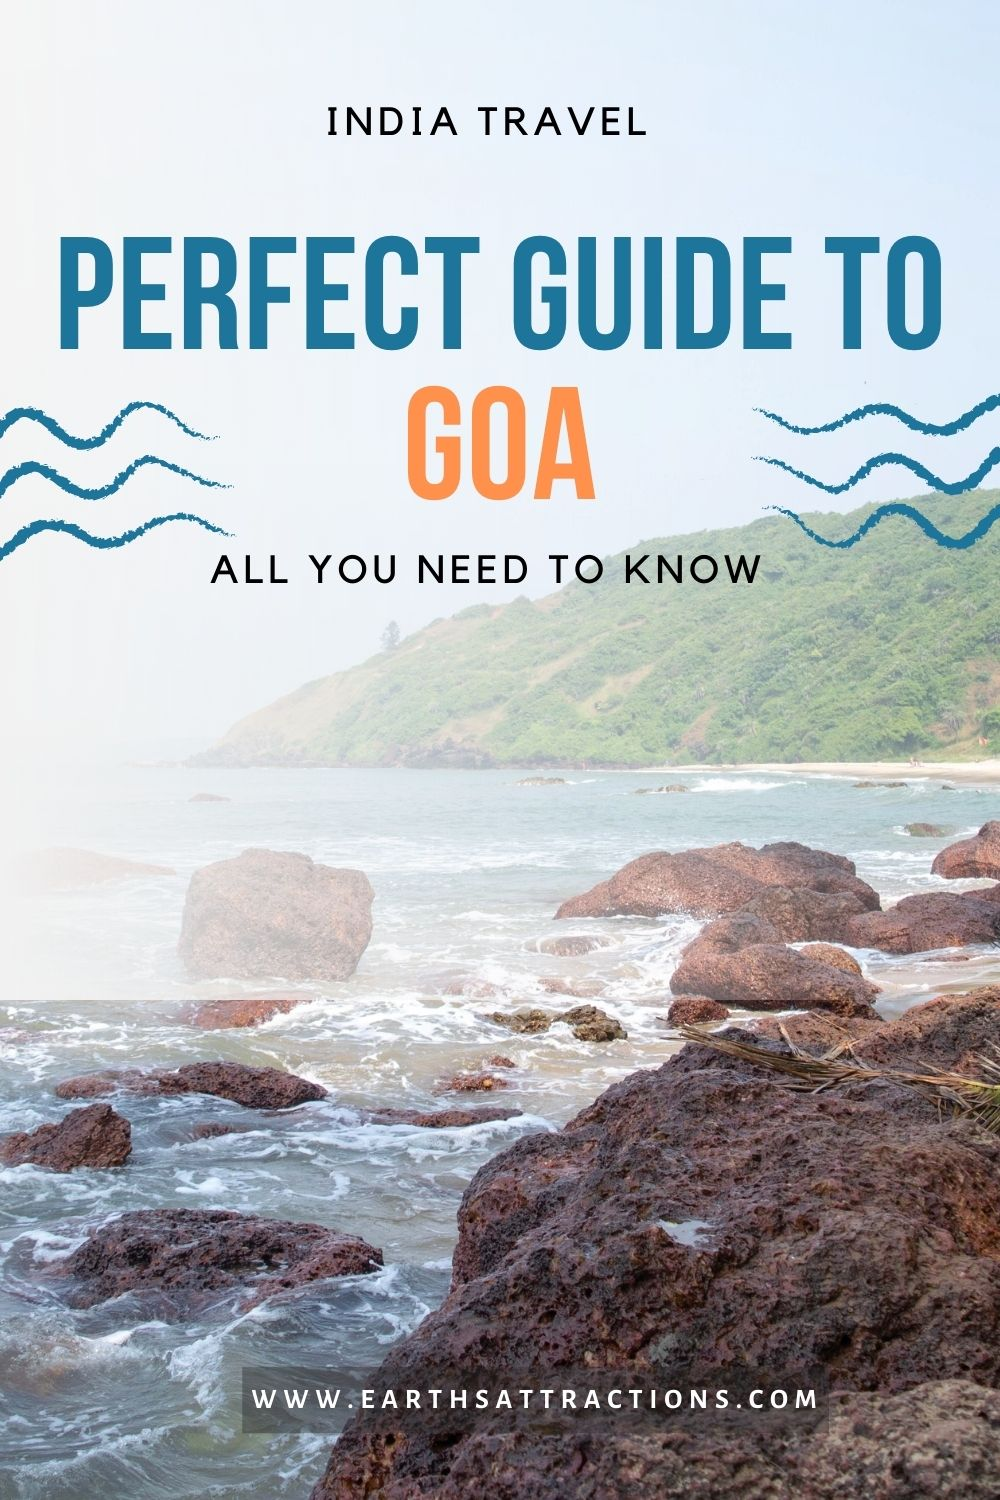 Goa travel: best places to visit in Goa. This guide has the best places to visit in Goa, including off the beaten path attractions in Goa, top restaurants in Goa, and, of course, the best hotels in Goa, plus some very helpful Goa travel tips. #goa #goaindia #indiatravel #india #earthsattractions #traveldestinations #asia #asiatravel #goathingstodo #goatips #goarestaurants #goahotels